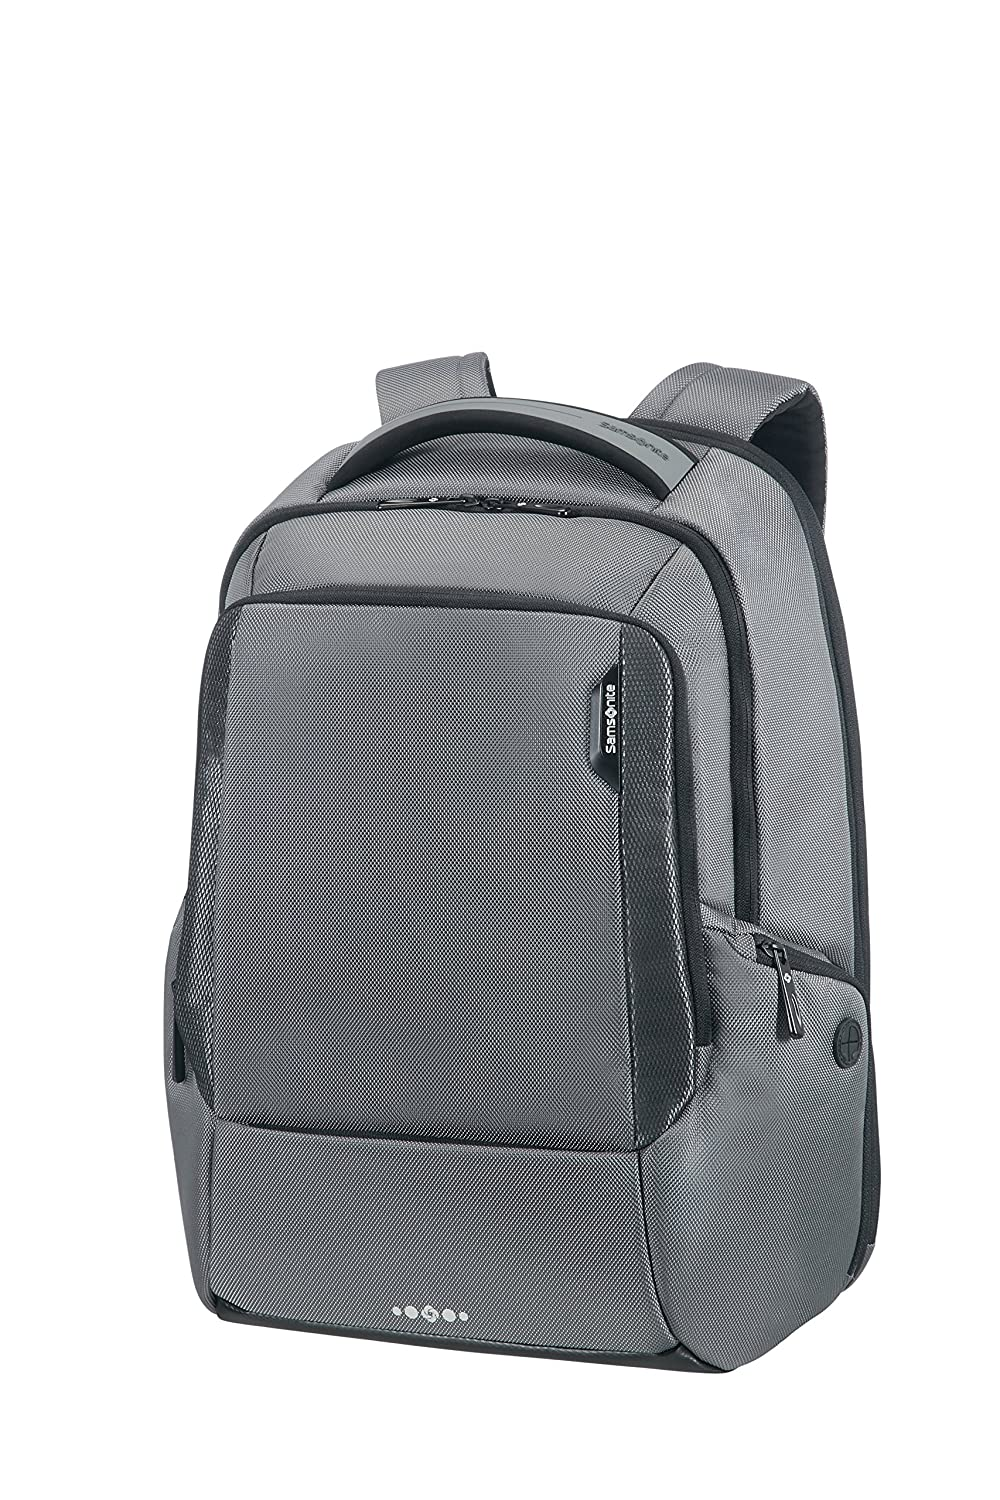 Samsonite Cityscape Tech LP Mochila Tipo Casual Expansible cm L Color Gris